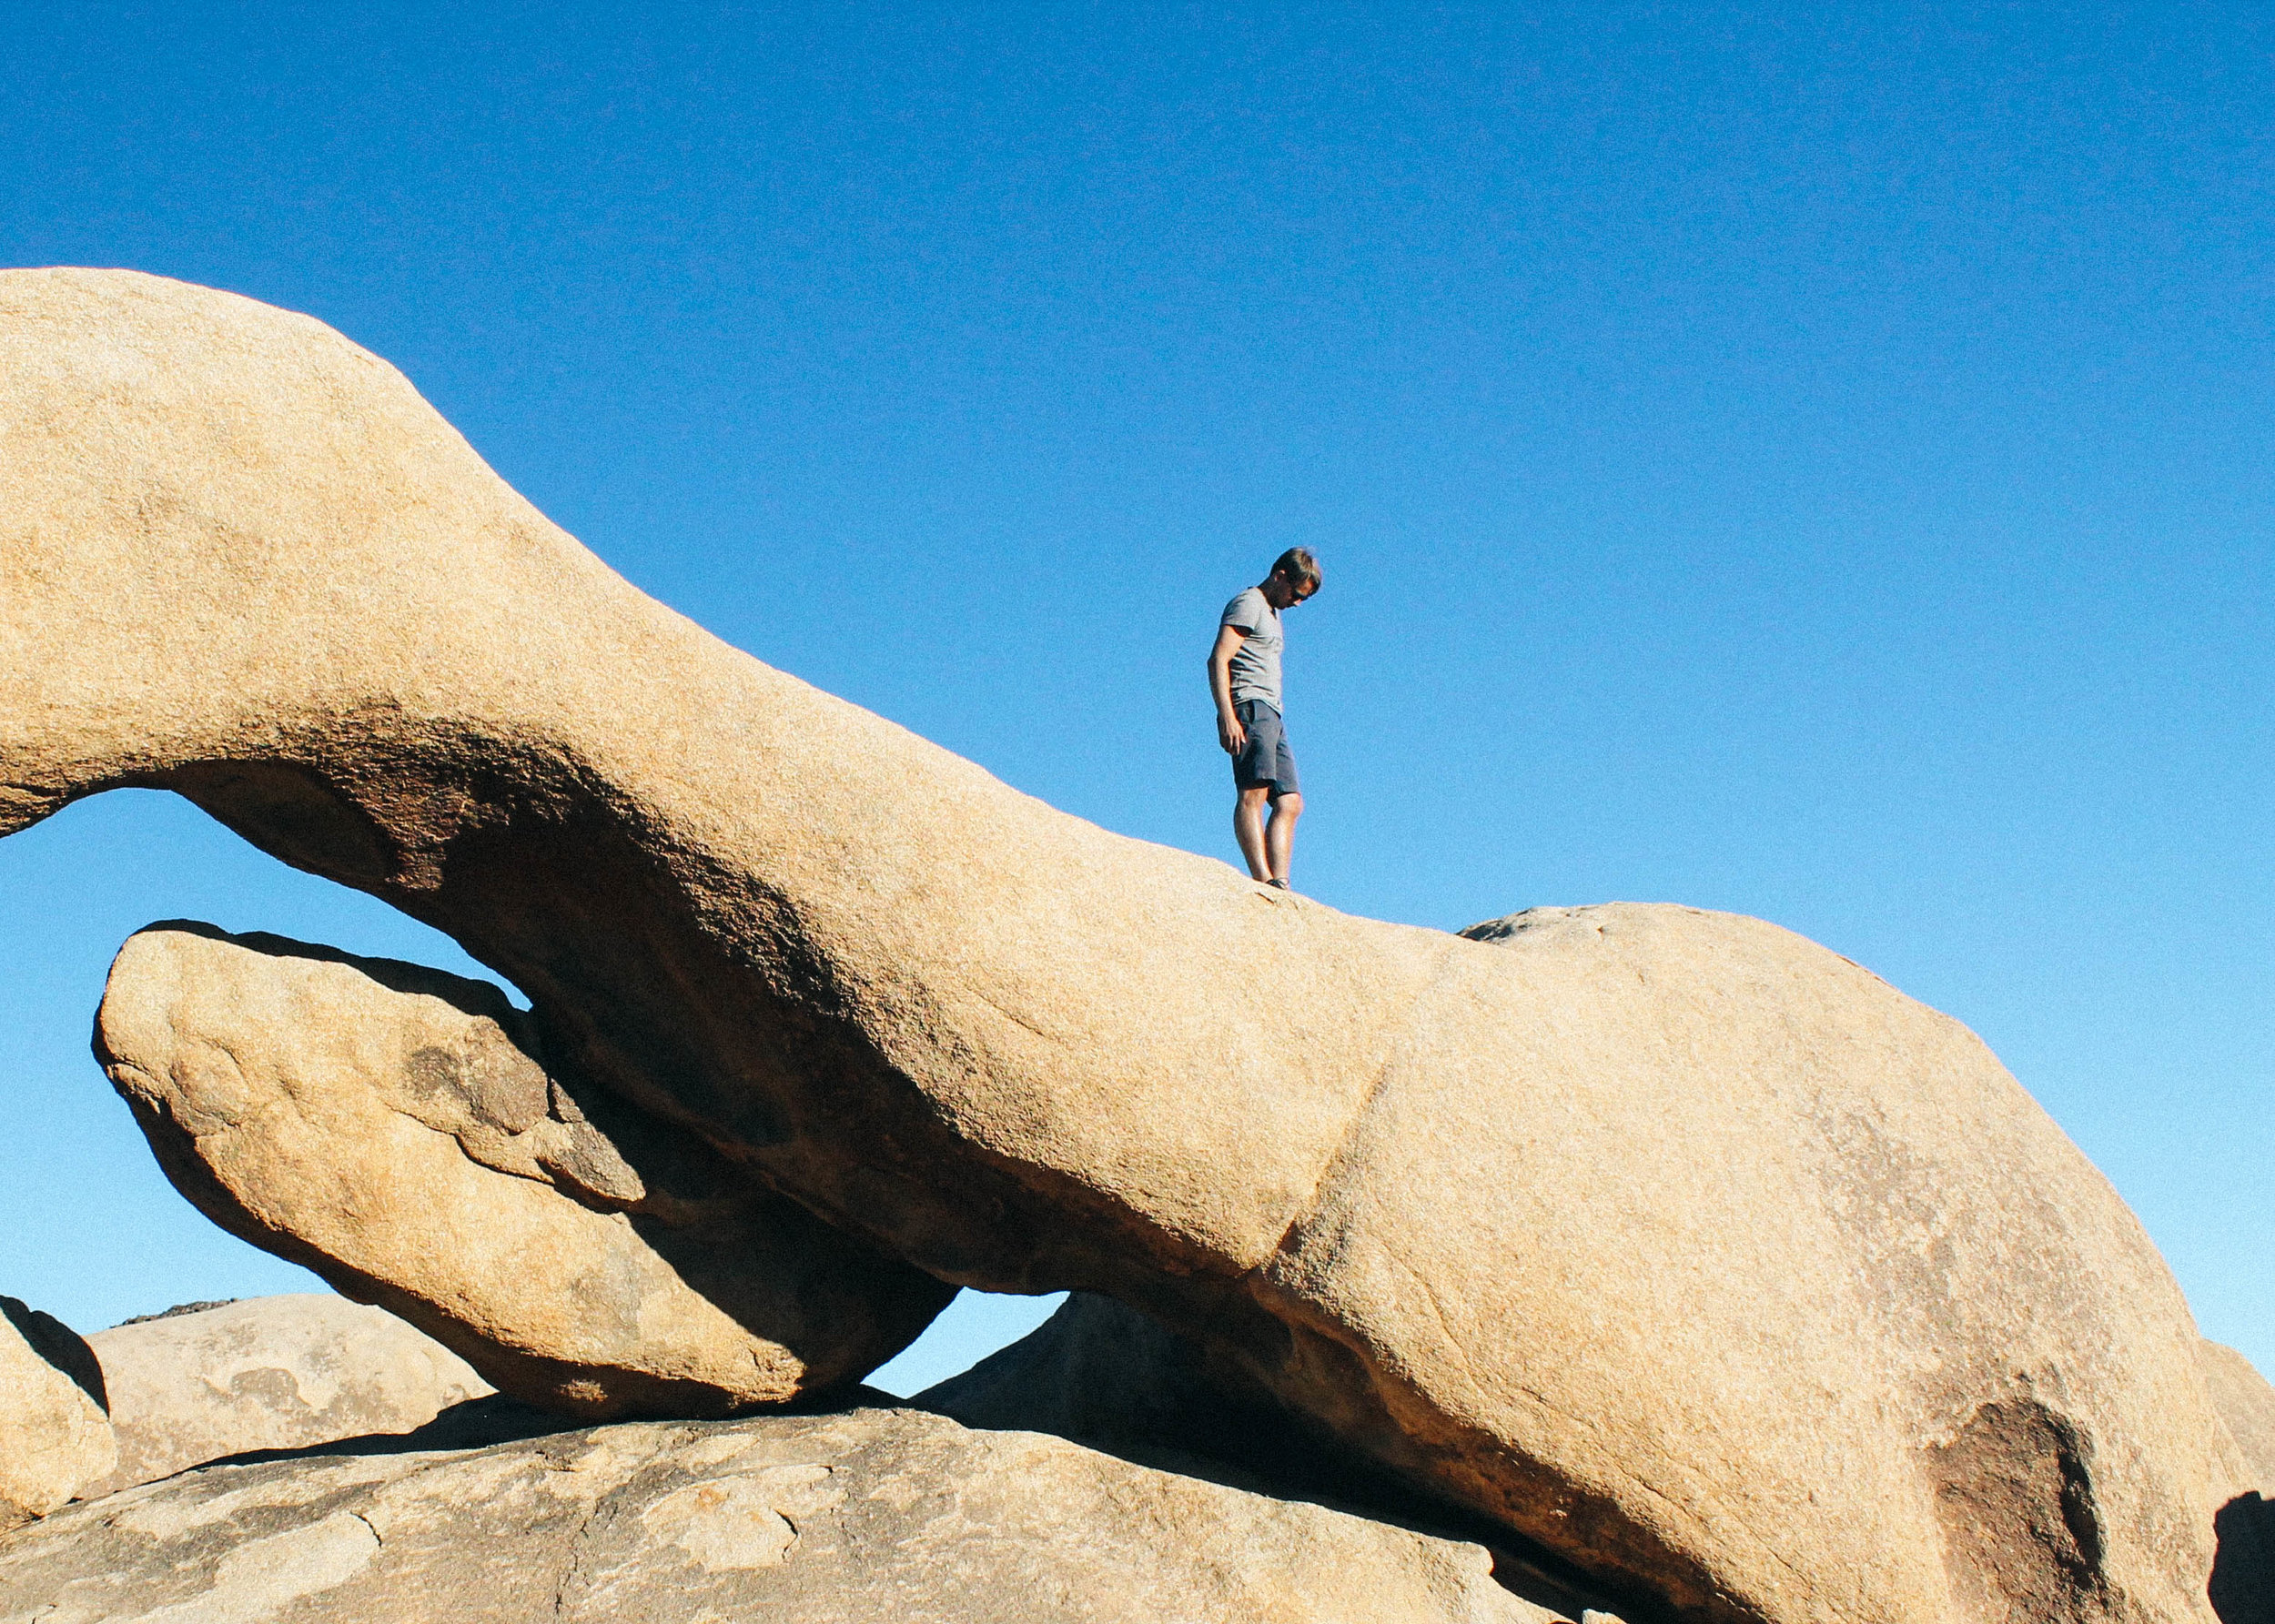 Famously intriguing rock gardens abound in Joshua Tree National Park